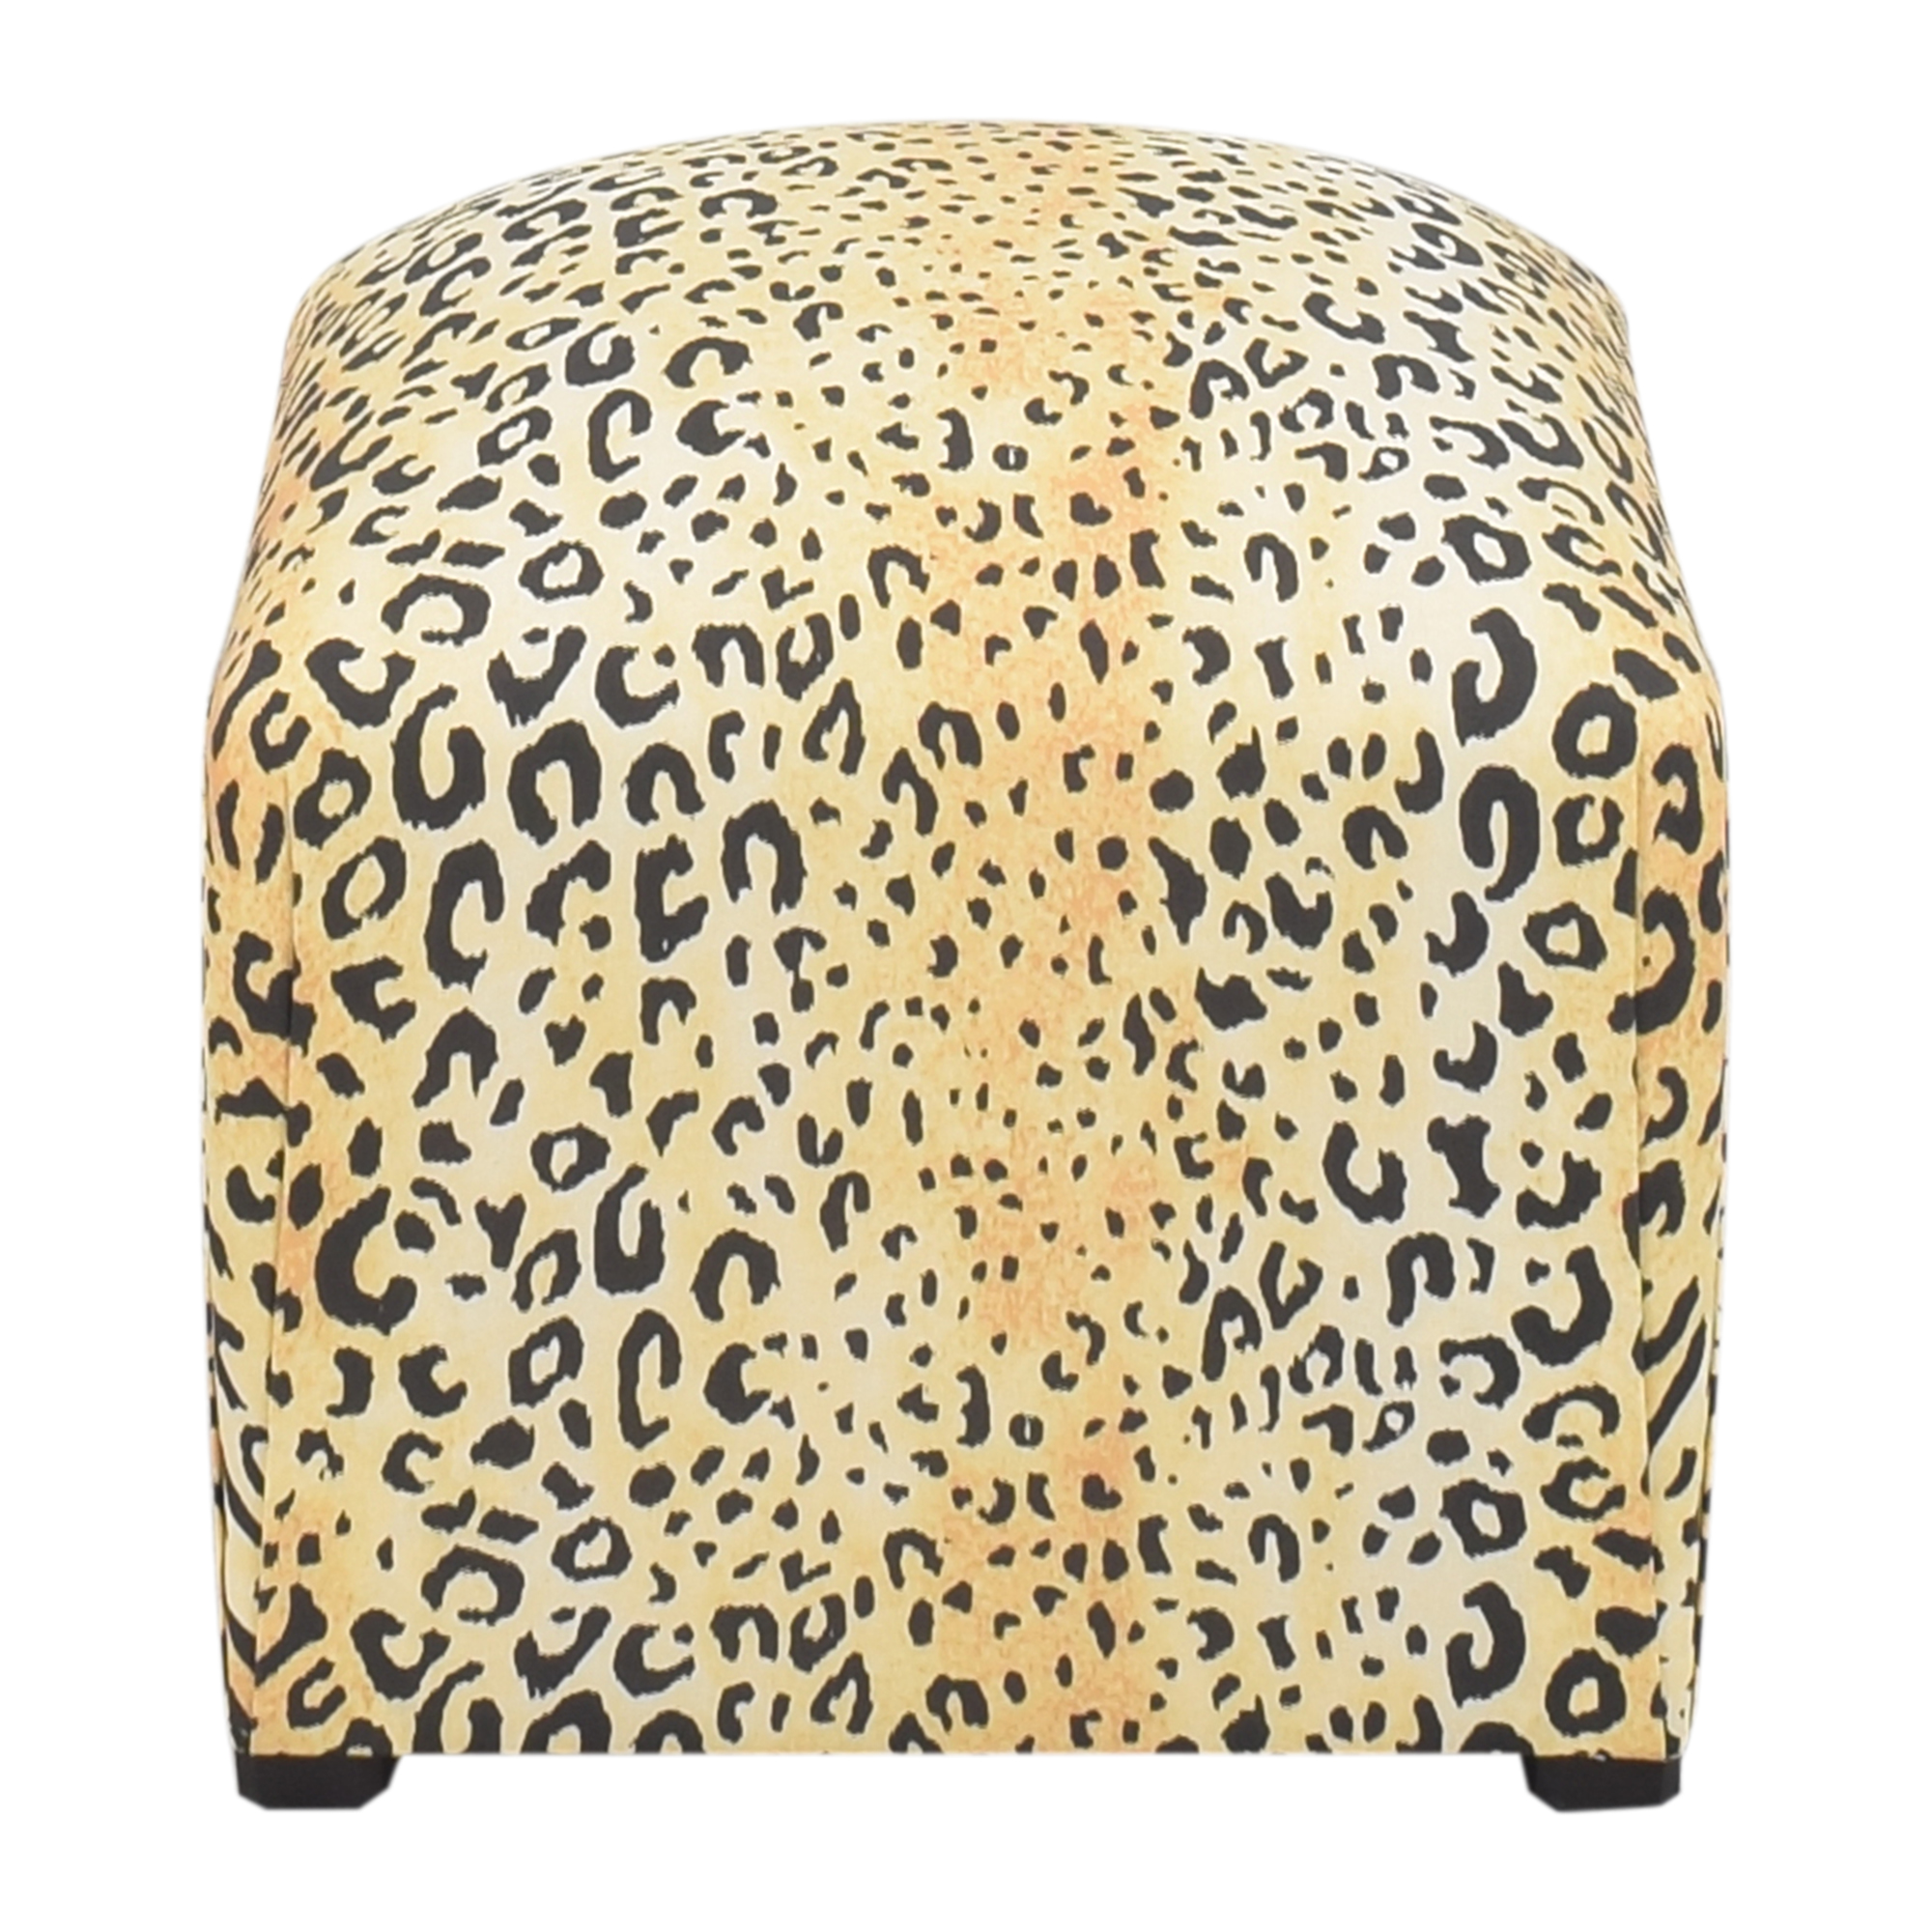 The Inside Leopard Deco Ottoman sale